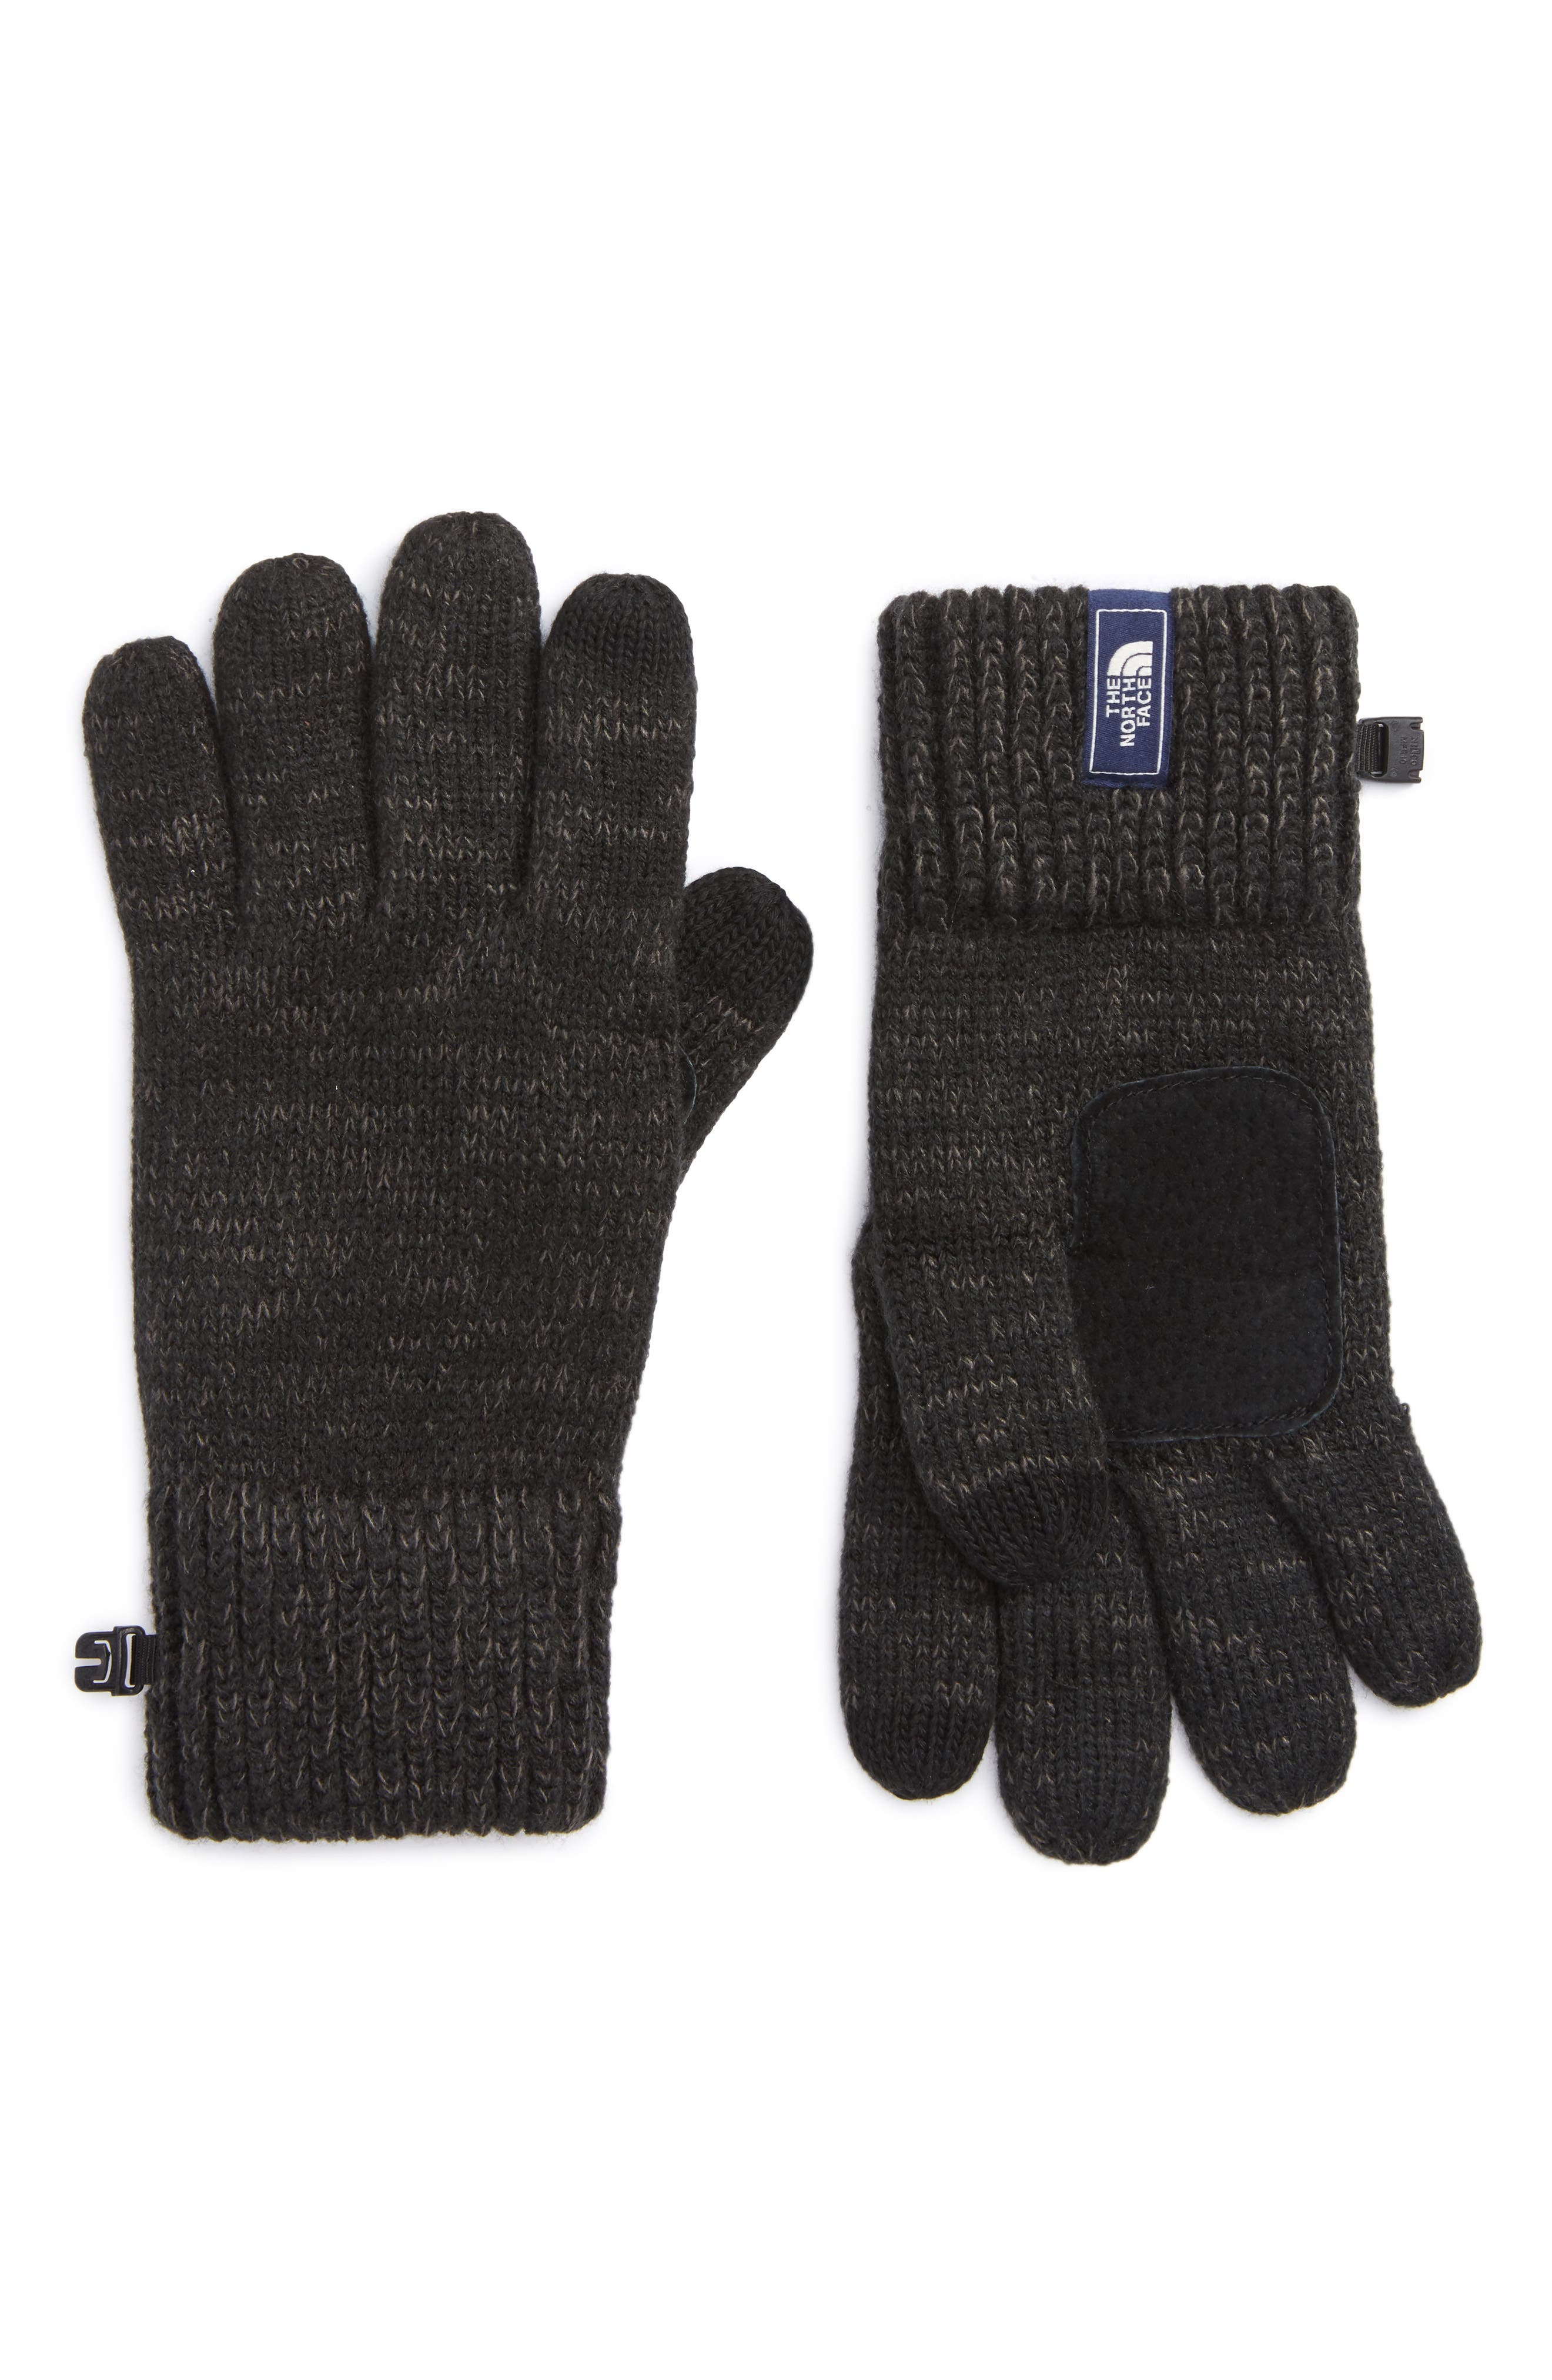 Main Image - The North Face Etip Salty Dog Knit Tech Gloves